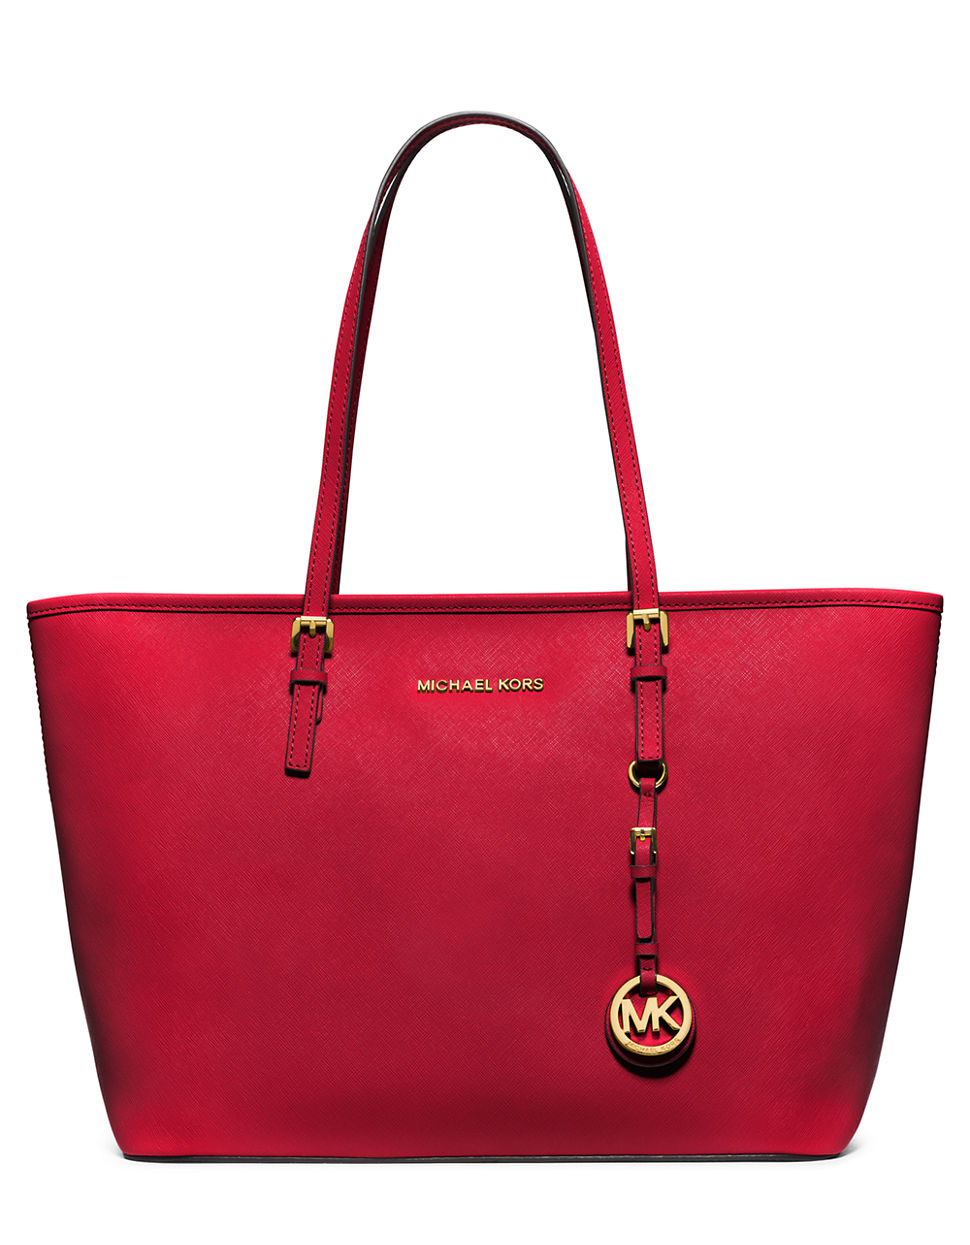 michael michael kors jet set leather travel tote in red chili lyst. Black Bedroom Furniture Sets. Home Design Ideas